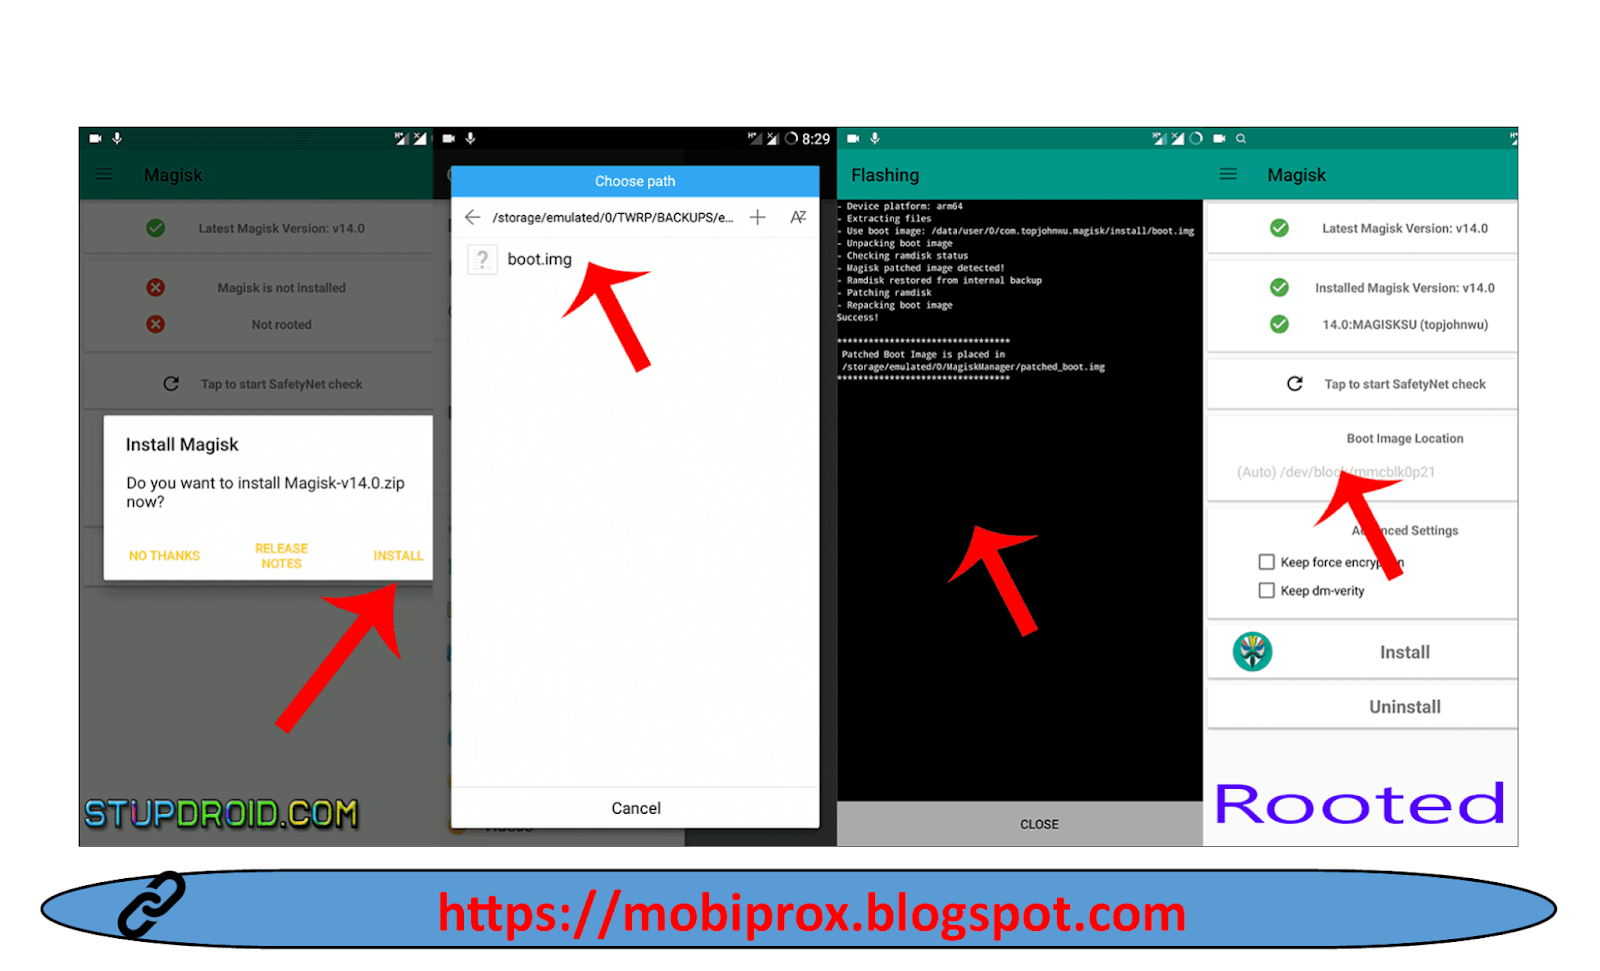 HOW TO ROOT YOUR ITEL A32F ANDROID OREO[Go Edition] | MOBIPROX BLOGSPOT